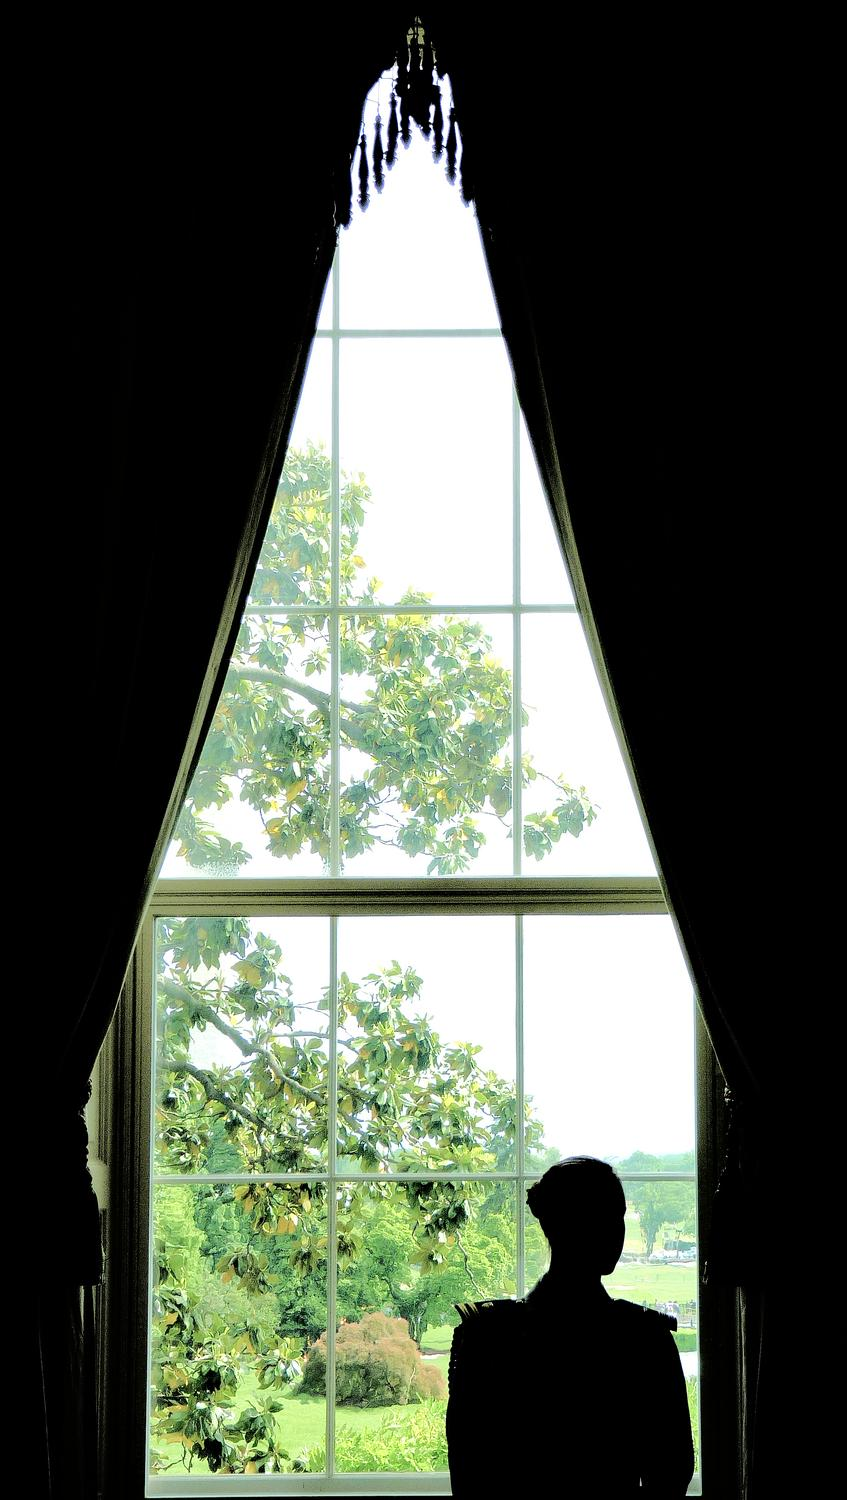 - A young officer stands silhouetted before a window. - Panasonic DMC-FZ35 - White House = President Barak Obama - Tony Karp, design, art, photography, techno-impressionist, techno-impressionism, aerial photography , drone , drones , dji , mavic pro , video , 3D printing - Books -